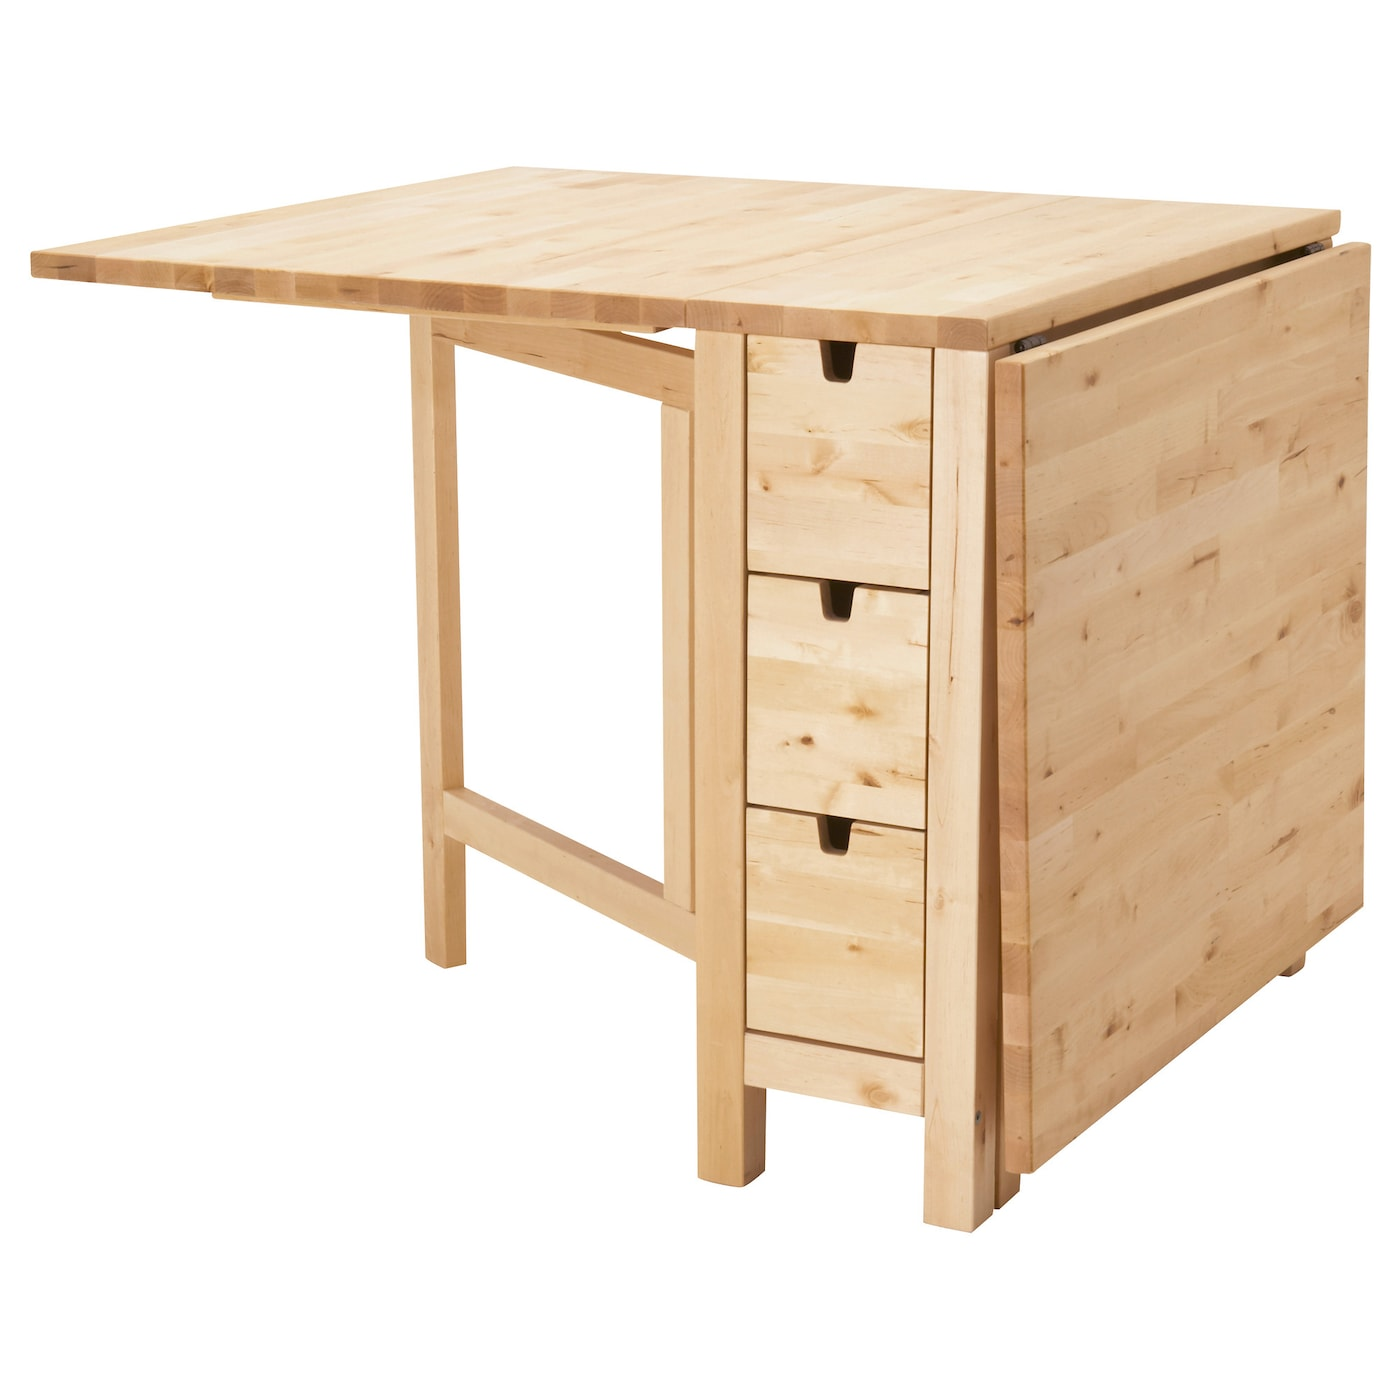 ikea norden gateleg table solid wood is a hardwearing natural material - Drafting Table Ikea